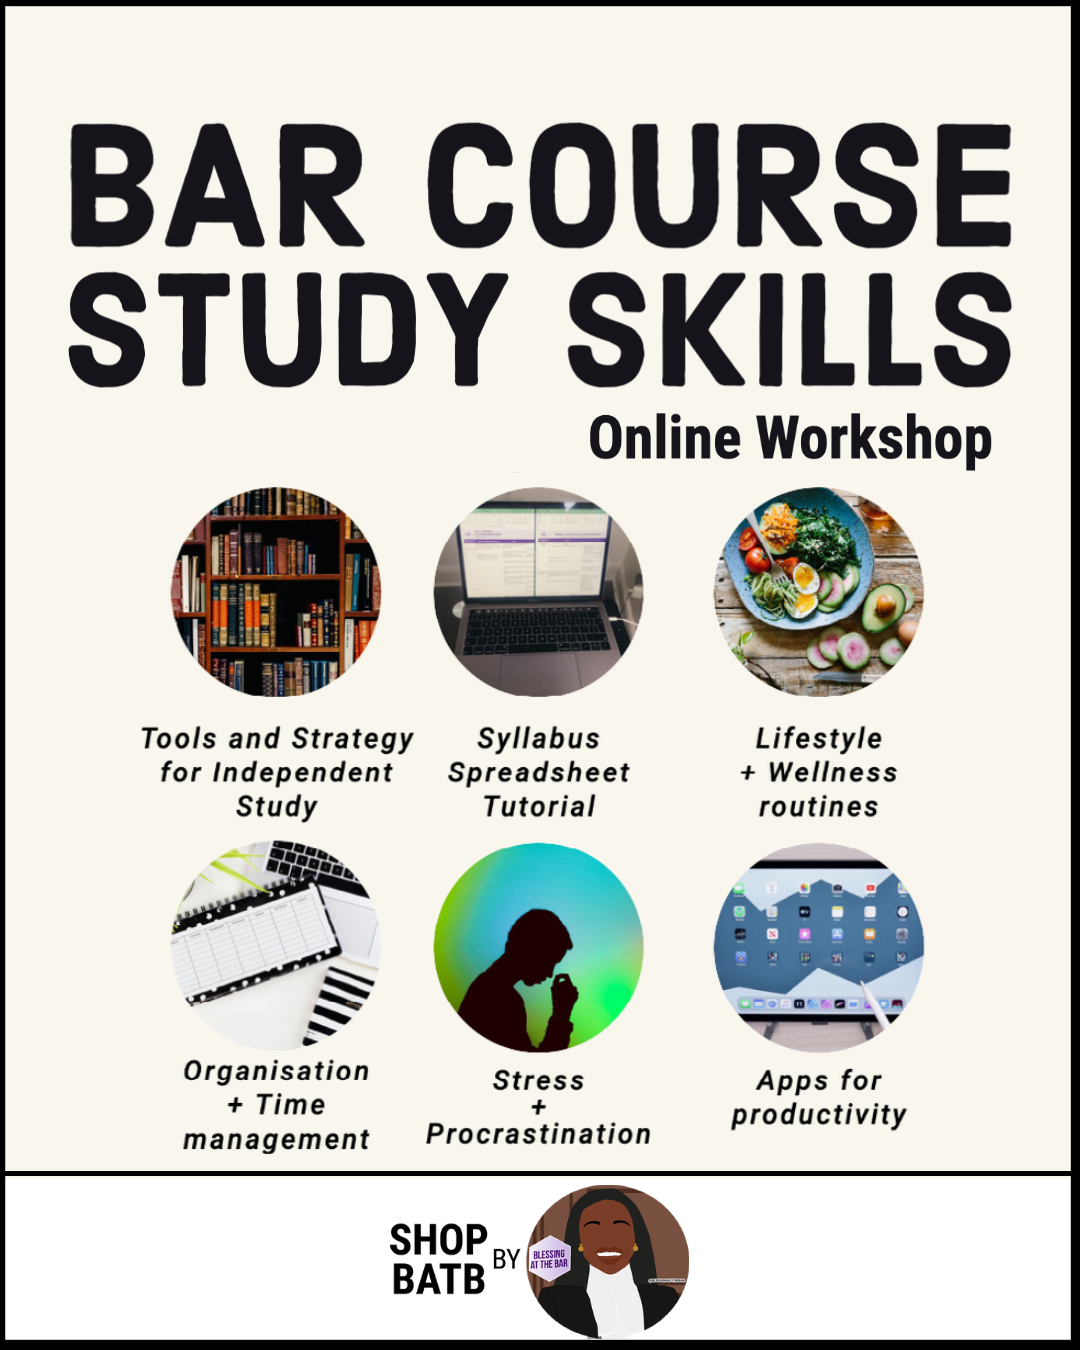 Bar Course Study Skills (Online Workshop) - SHOP BATB